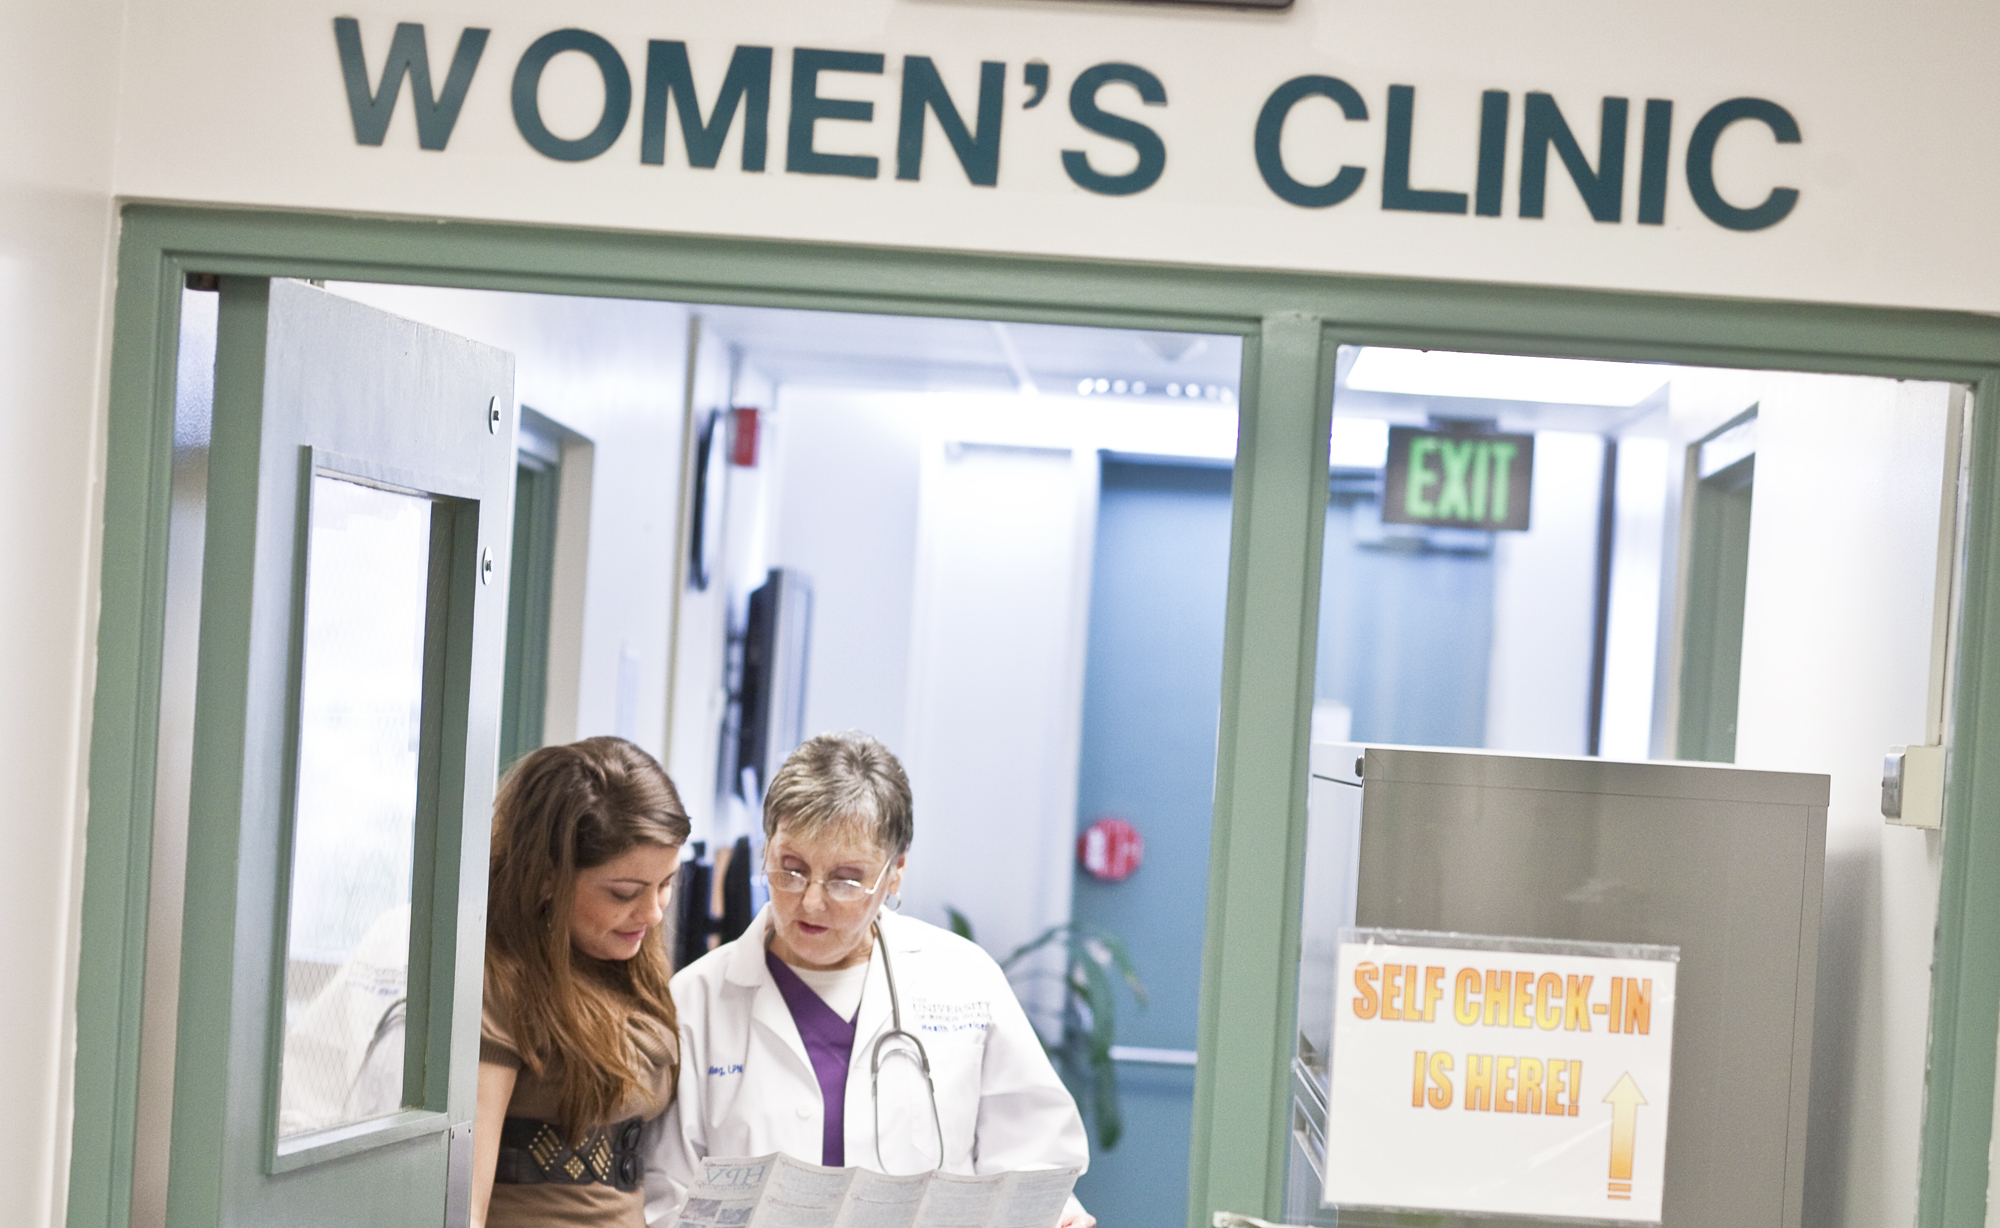 Student in the Women's Clinic